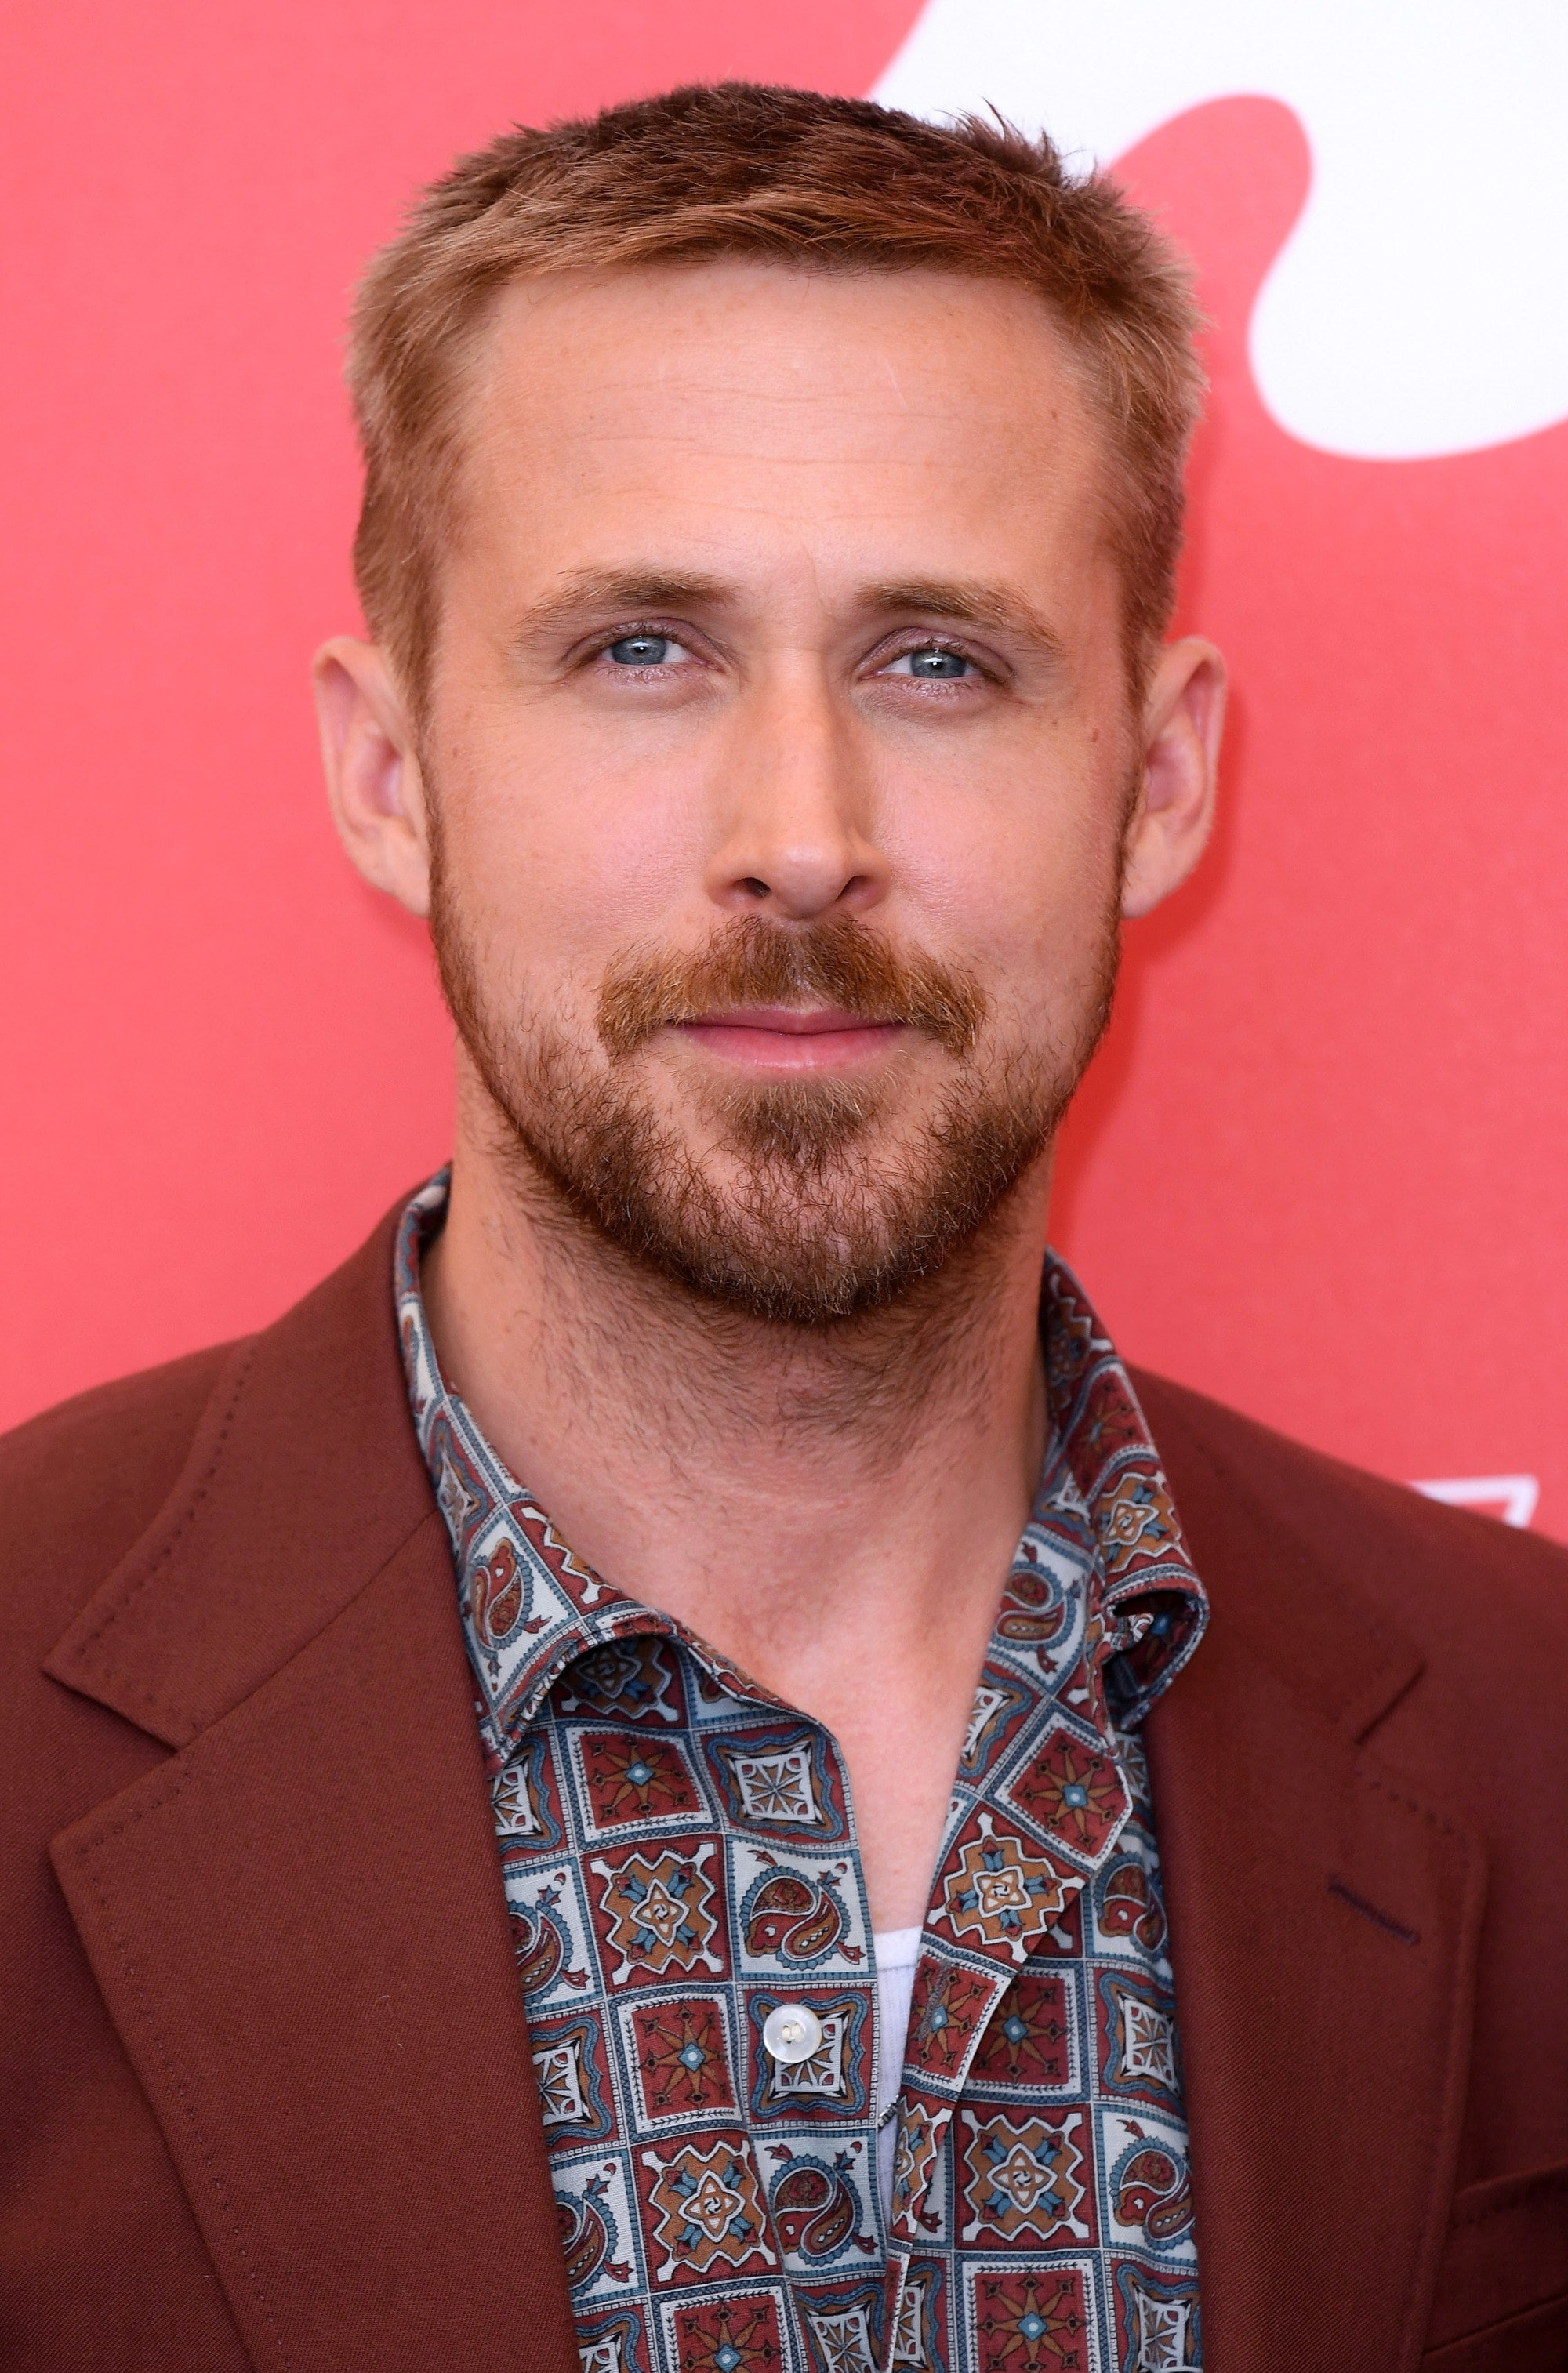 Ryan Gosling haircut: Ryan Gosling with a short classic crew cut with facial hair, wearing a patterned shirt and brown blazer